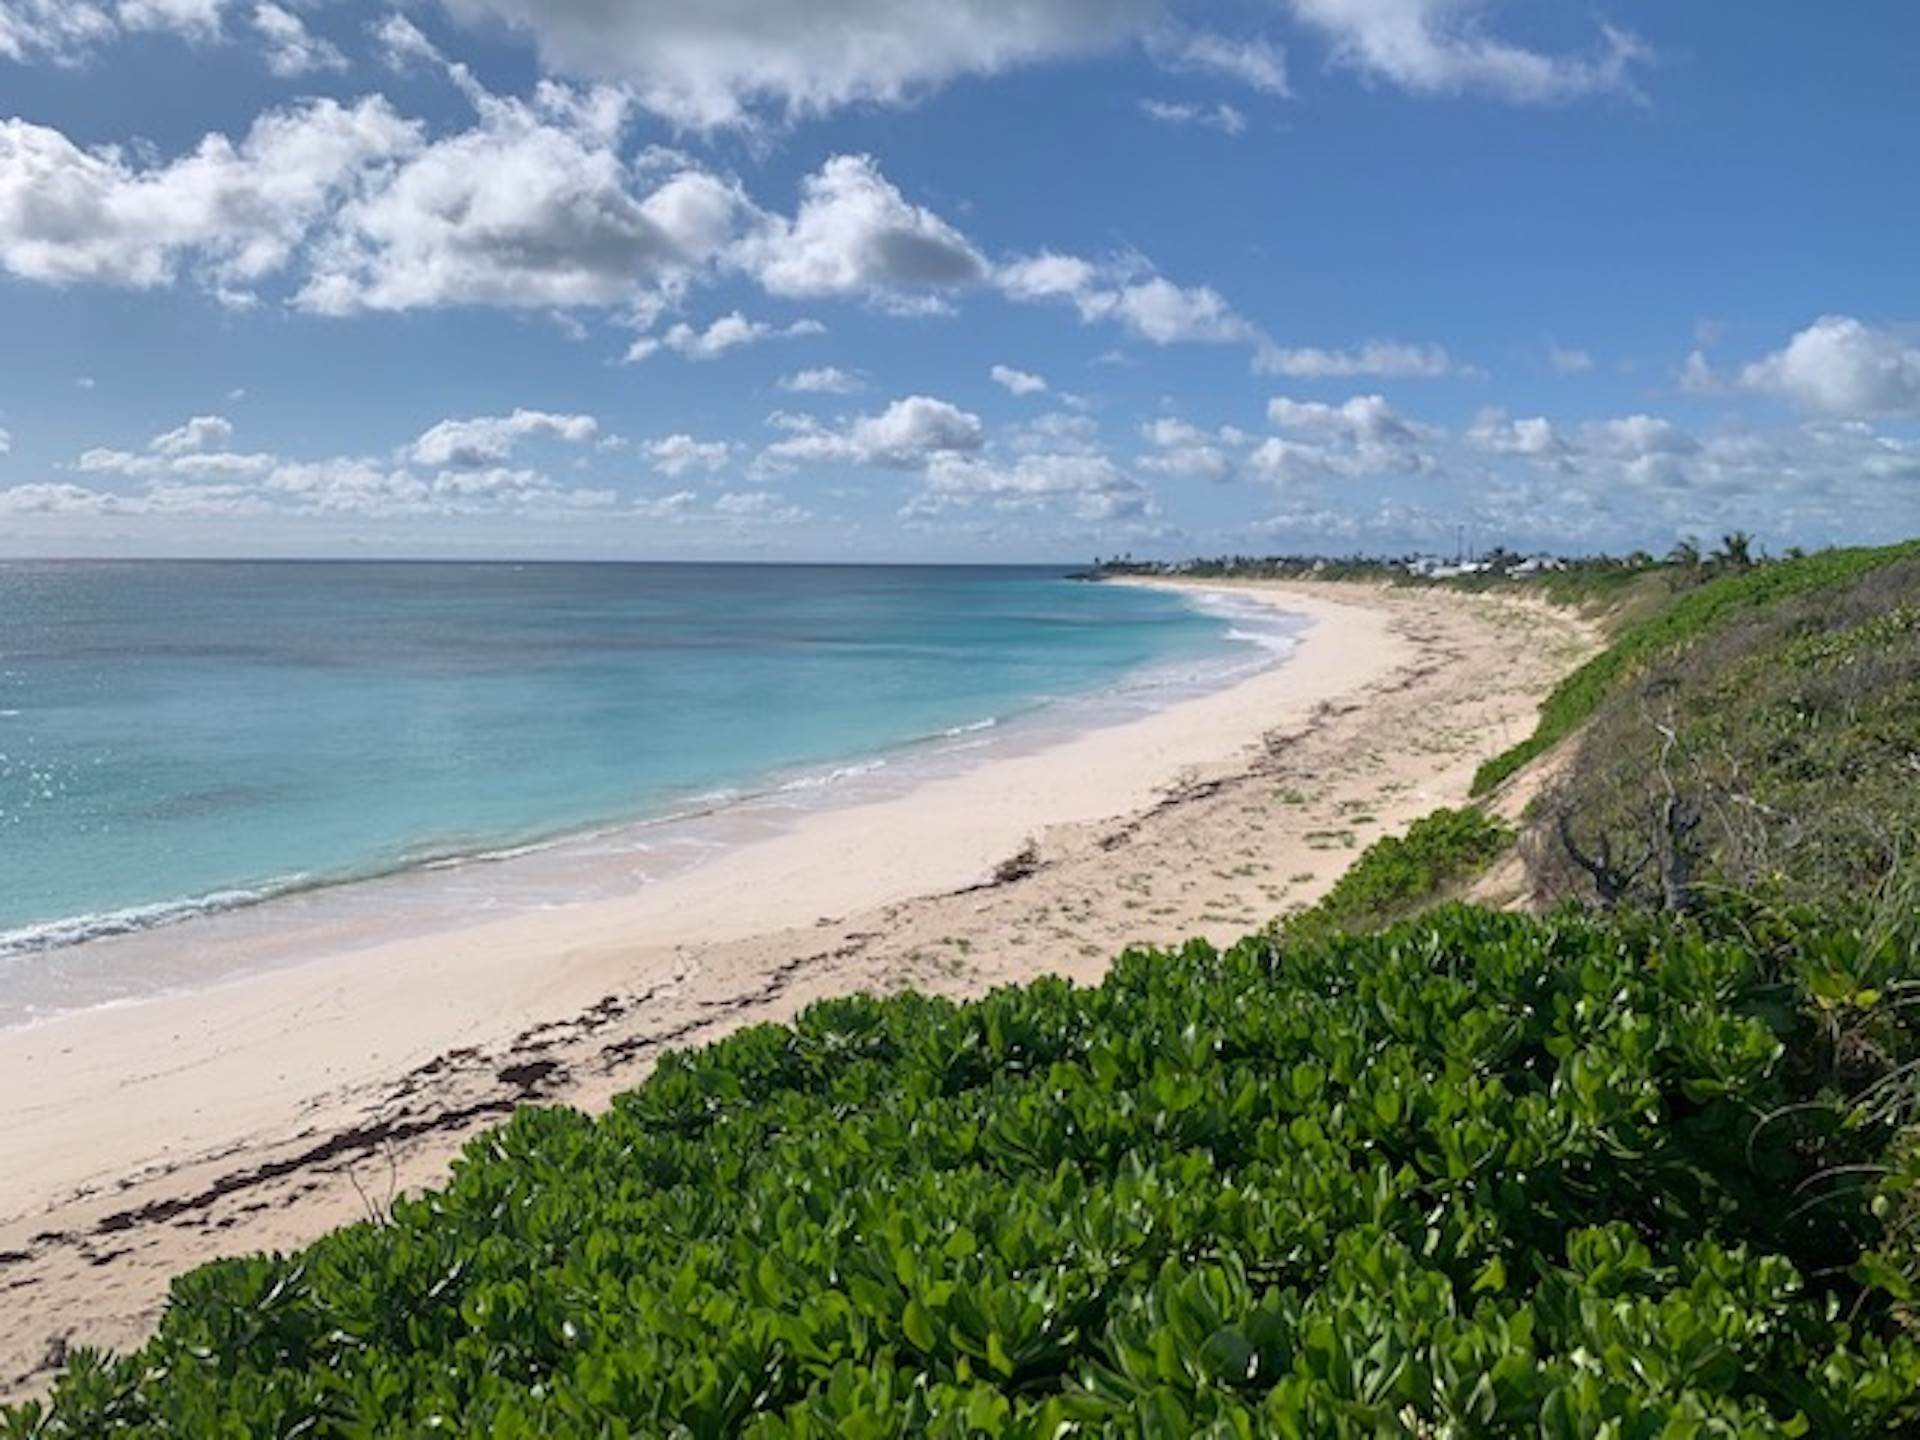 11. Single Family Homes for Sale at Sea to Sea - MLS 43964 Elbow Cay Hope Town, Abaco, Bahamas